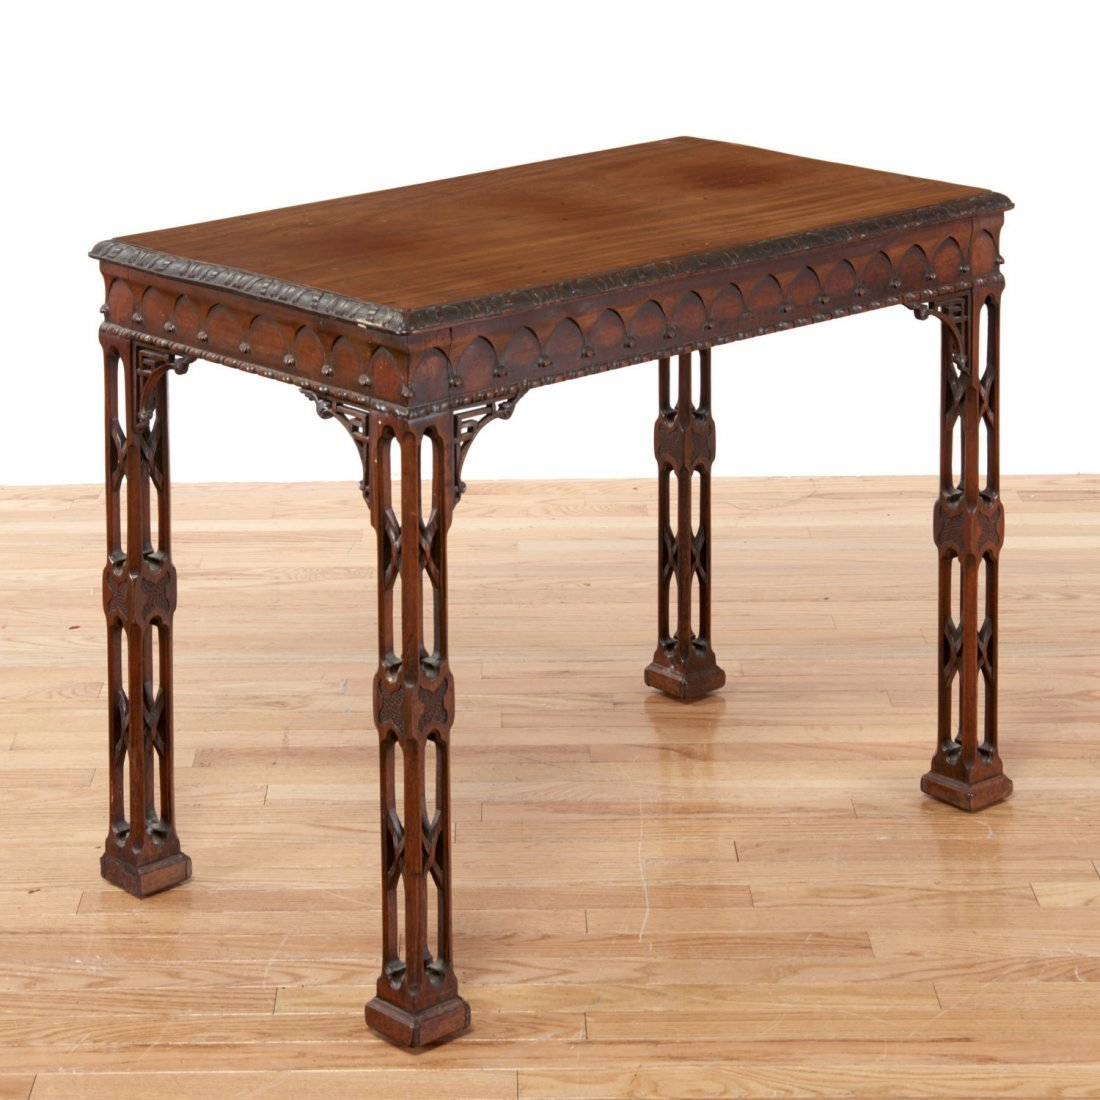 Gothic Revival carved mahogany side table